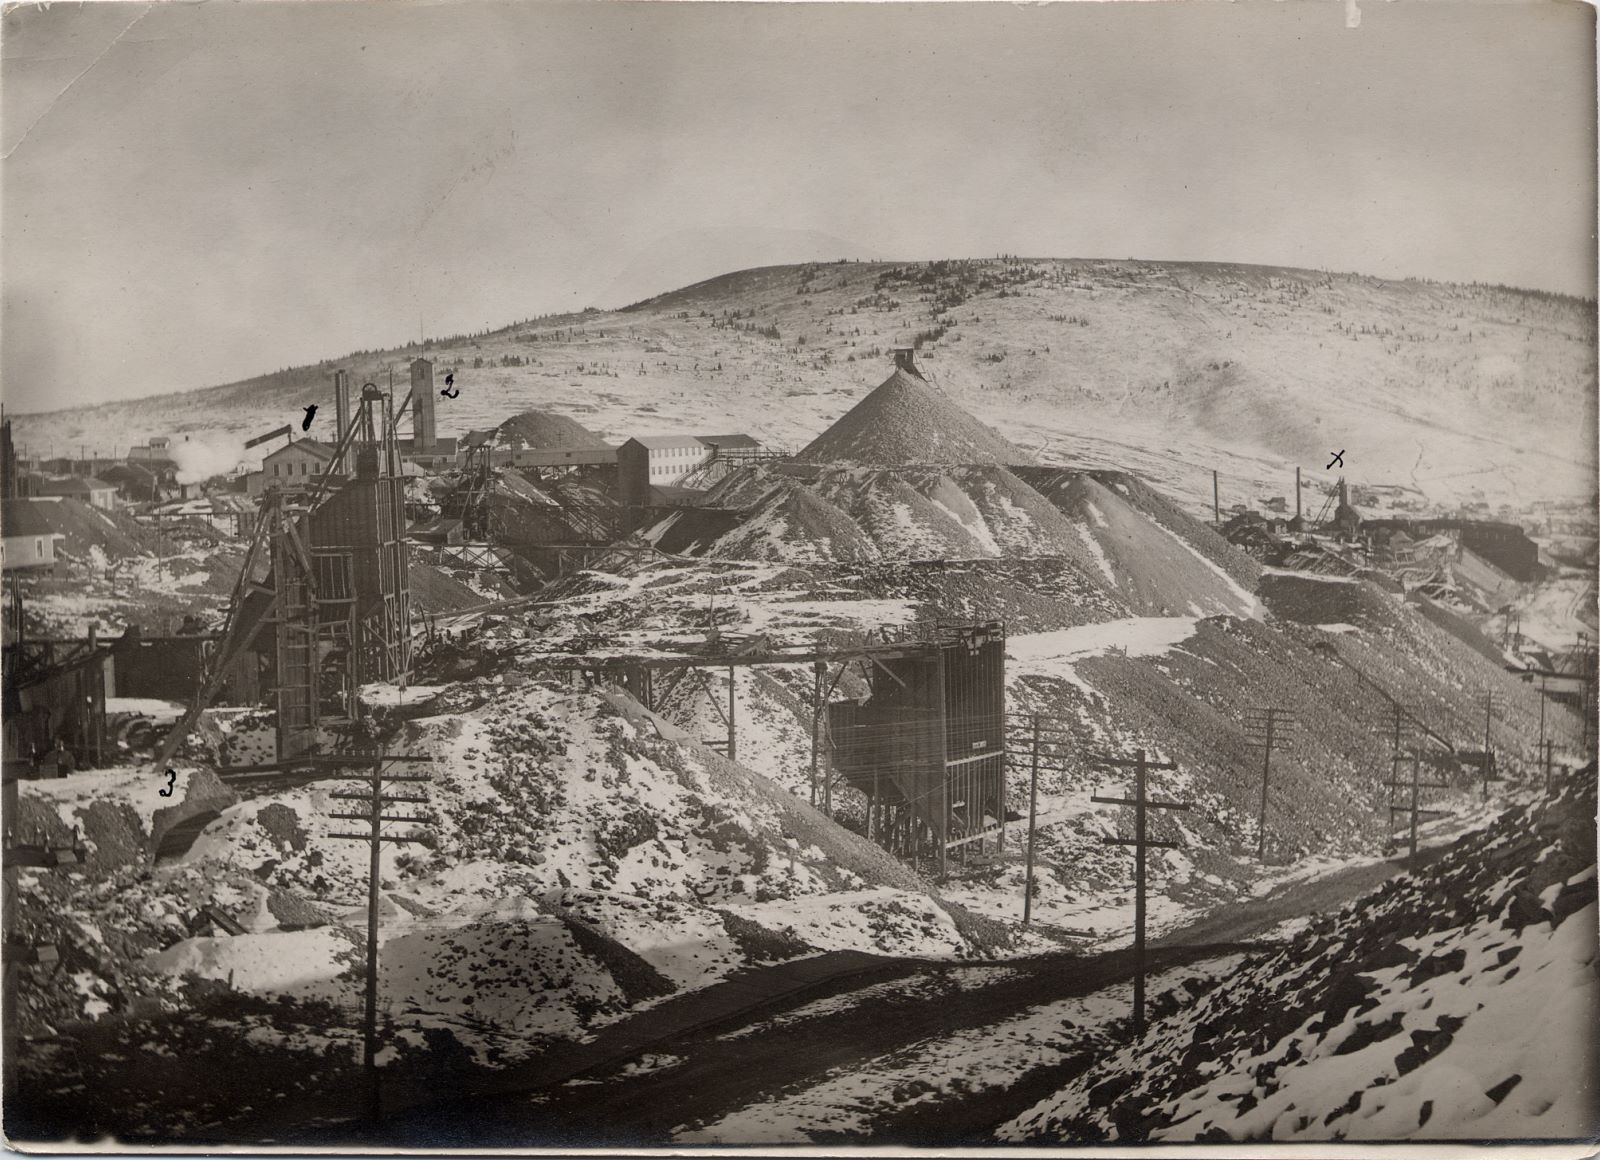 --- Text on backside:    No. 1 - 2 - 3 are shafts of the Vindicator mine, which is the largest mine here. They work a great many men. Have one mill here and one at the Springs. They are building a new one here that will use the new oil flotatation system.    X Was the Golden Cycle mine, it now belongs to the Vindicator.    These mines have produced many millions of dollars, nearly as much as the Portland, and have still millions in sight. --- End Text on Backside --- -> I've seen it mention in a mining magazine from May 1915 that the Golden Cycle was sold to the Vindicator, hence this image must be from sometime after this timeframe.